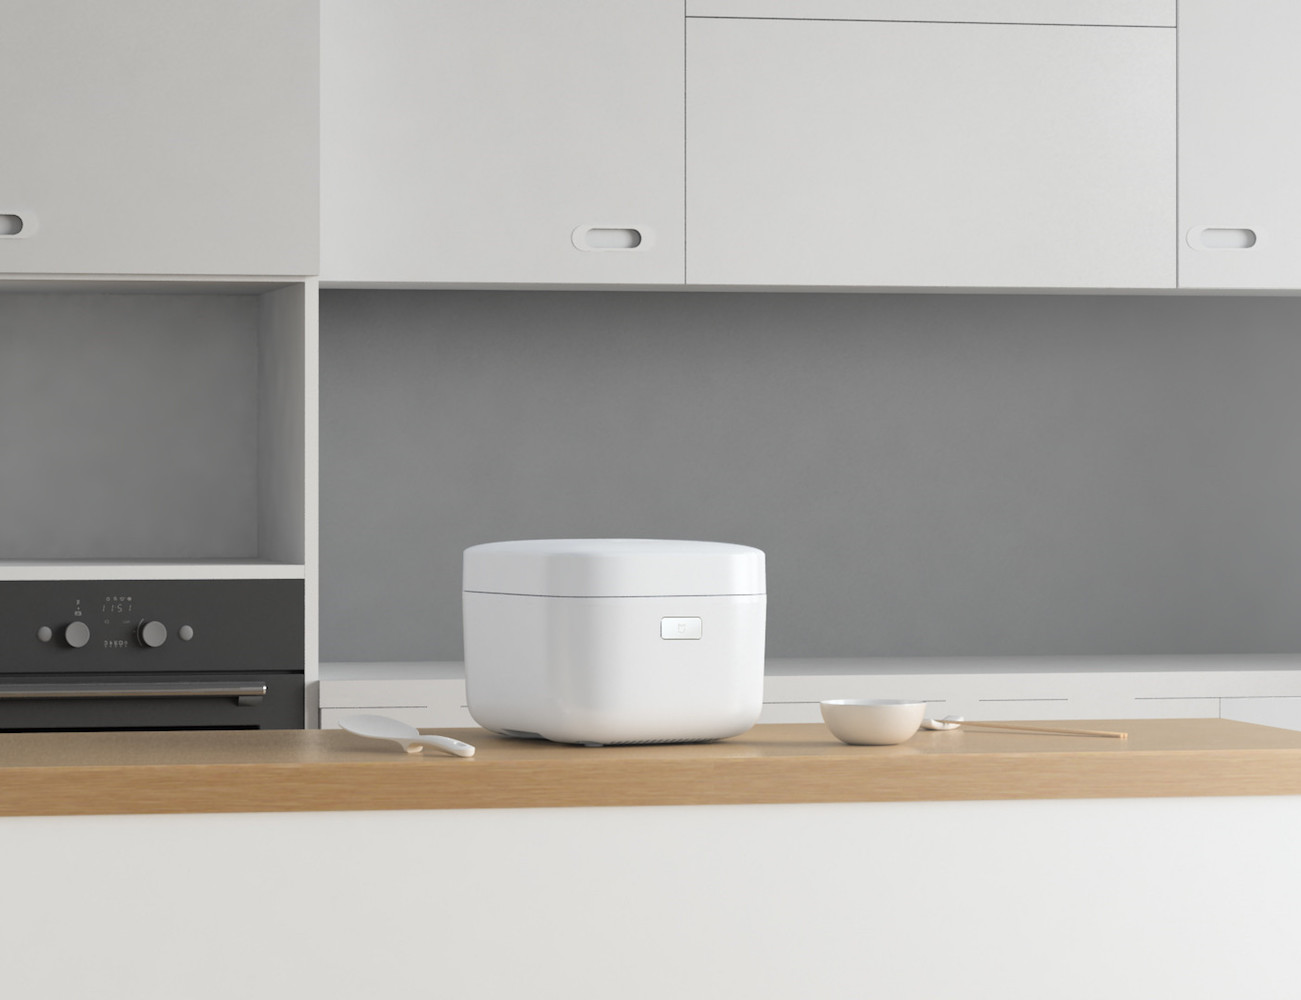 Mi Rice Cooker by Xiaomi